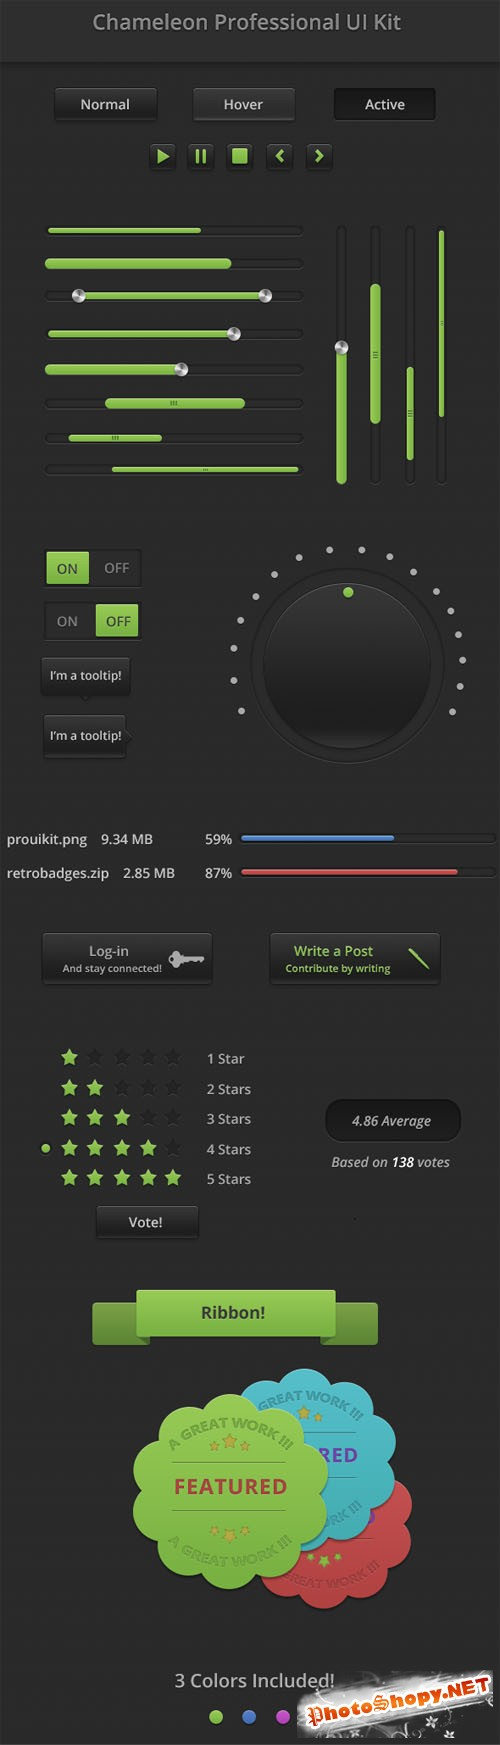 Chameleon Professional User Interface PSD Template